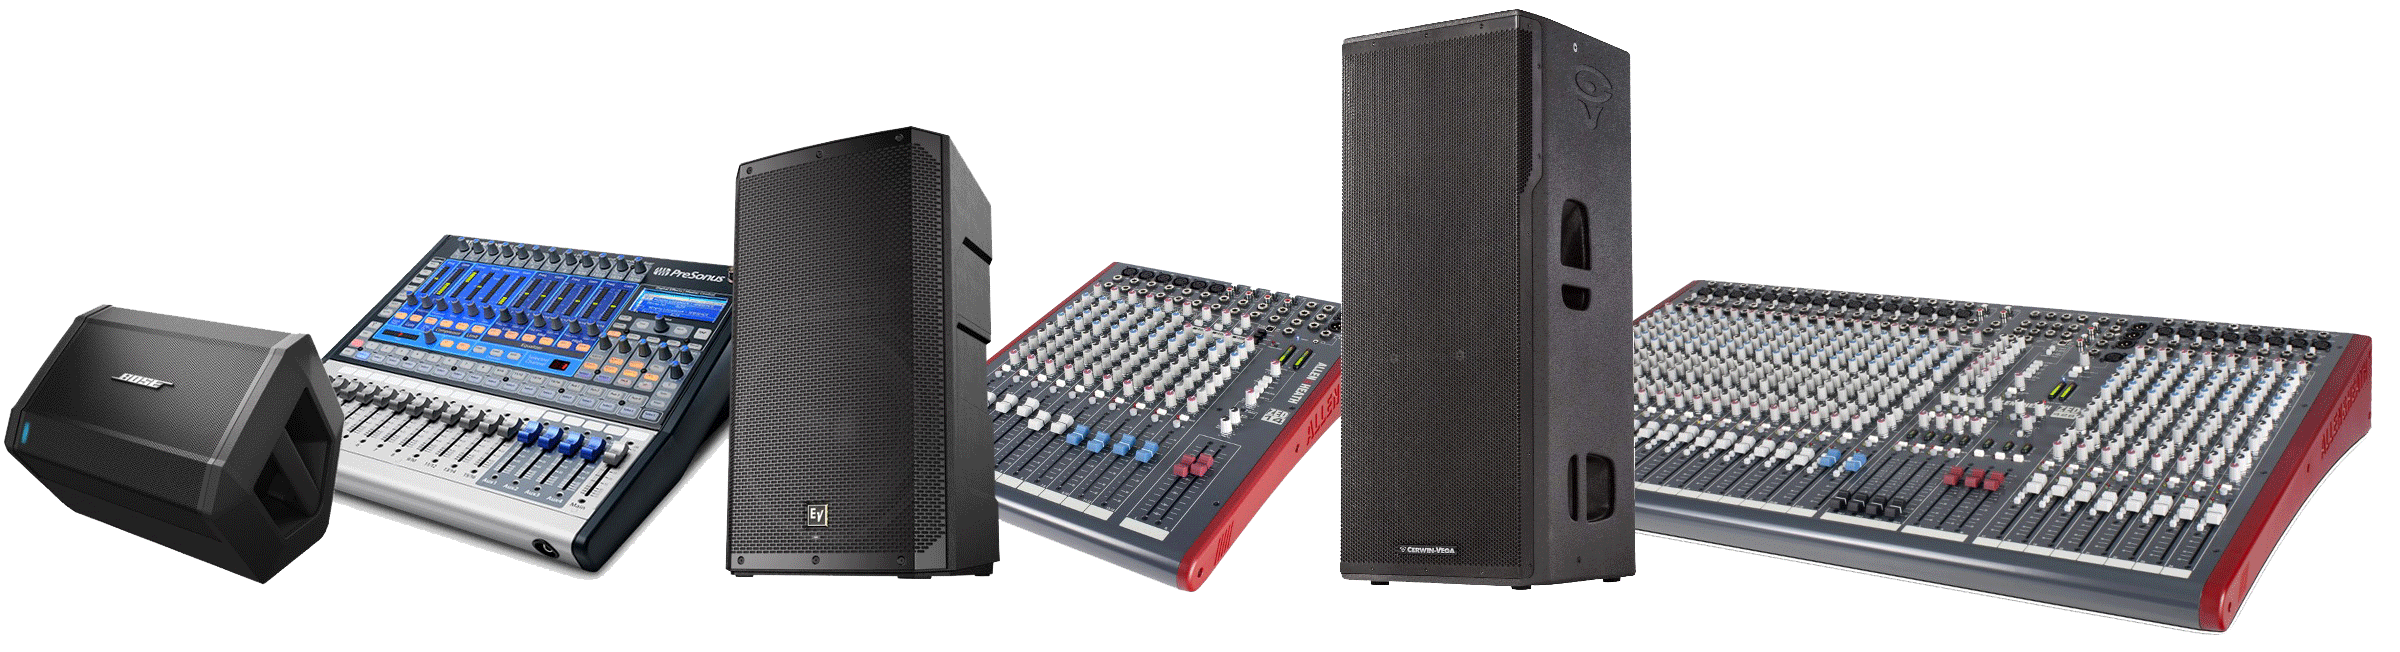 PA equipment including speakers and mixers